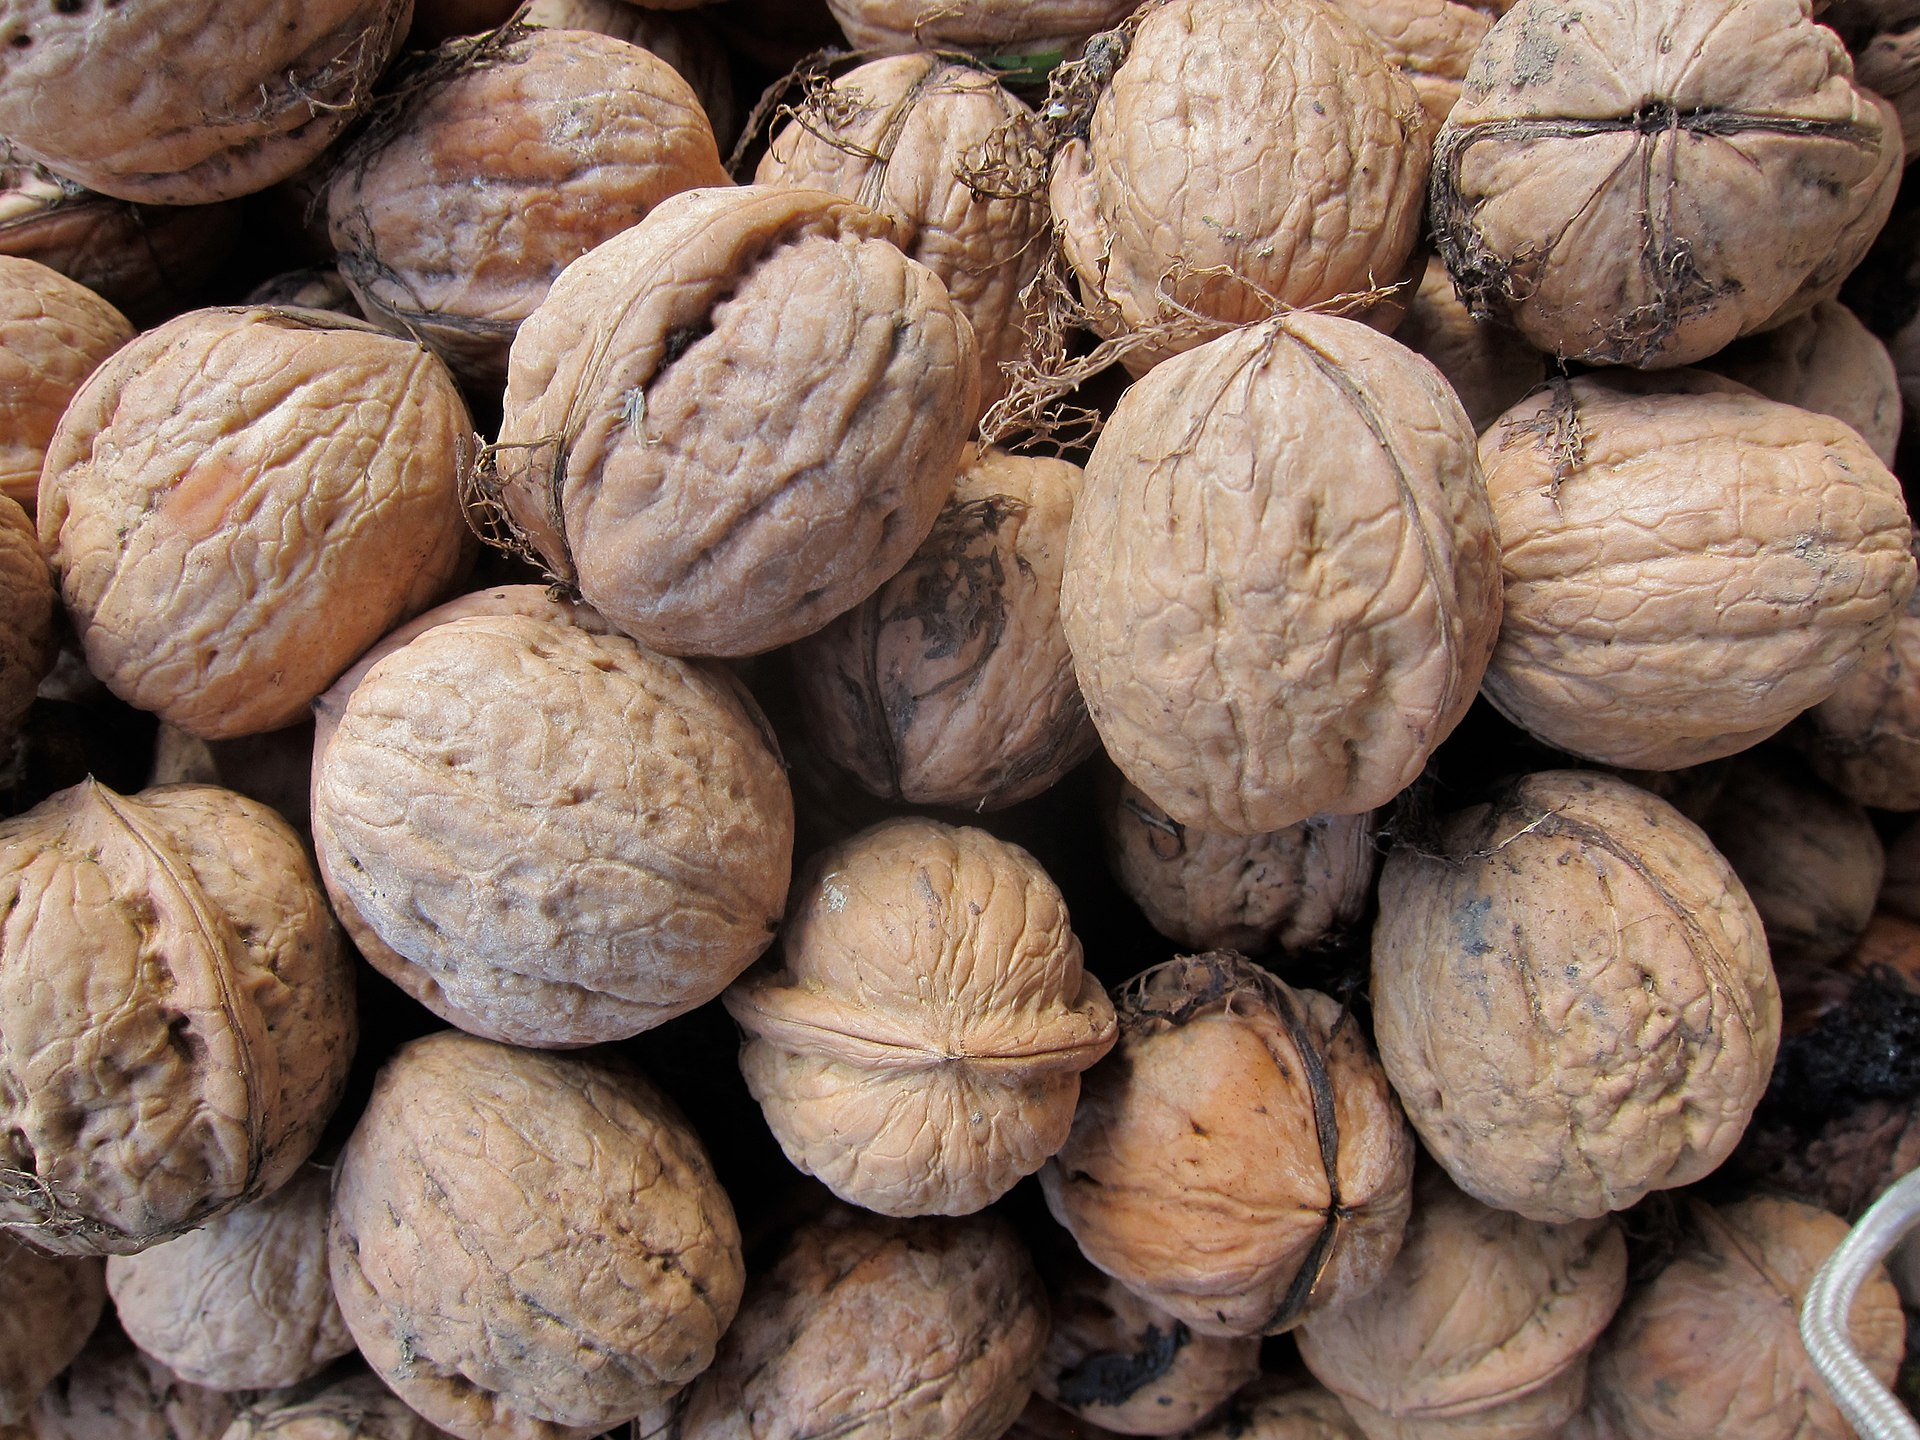 Previous research that prompted this microbial research showed that the amount of energy (calories) derived from walnuts after we eat them is less than previously though